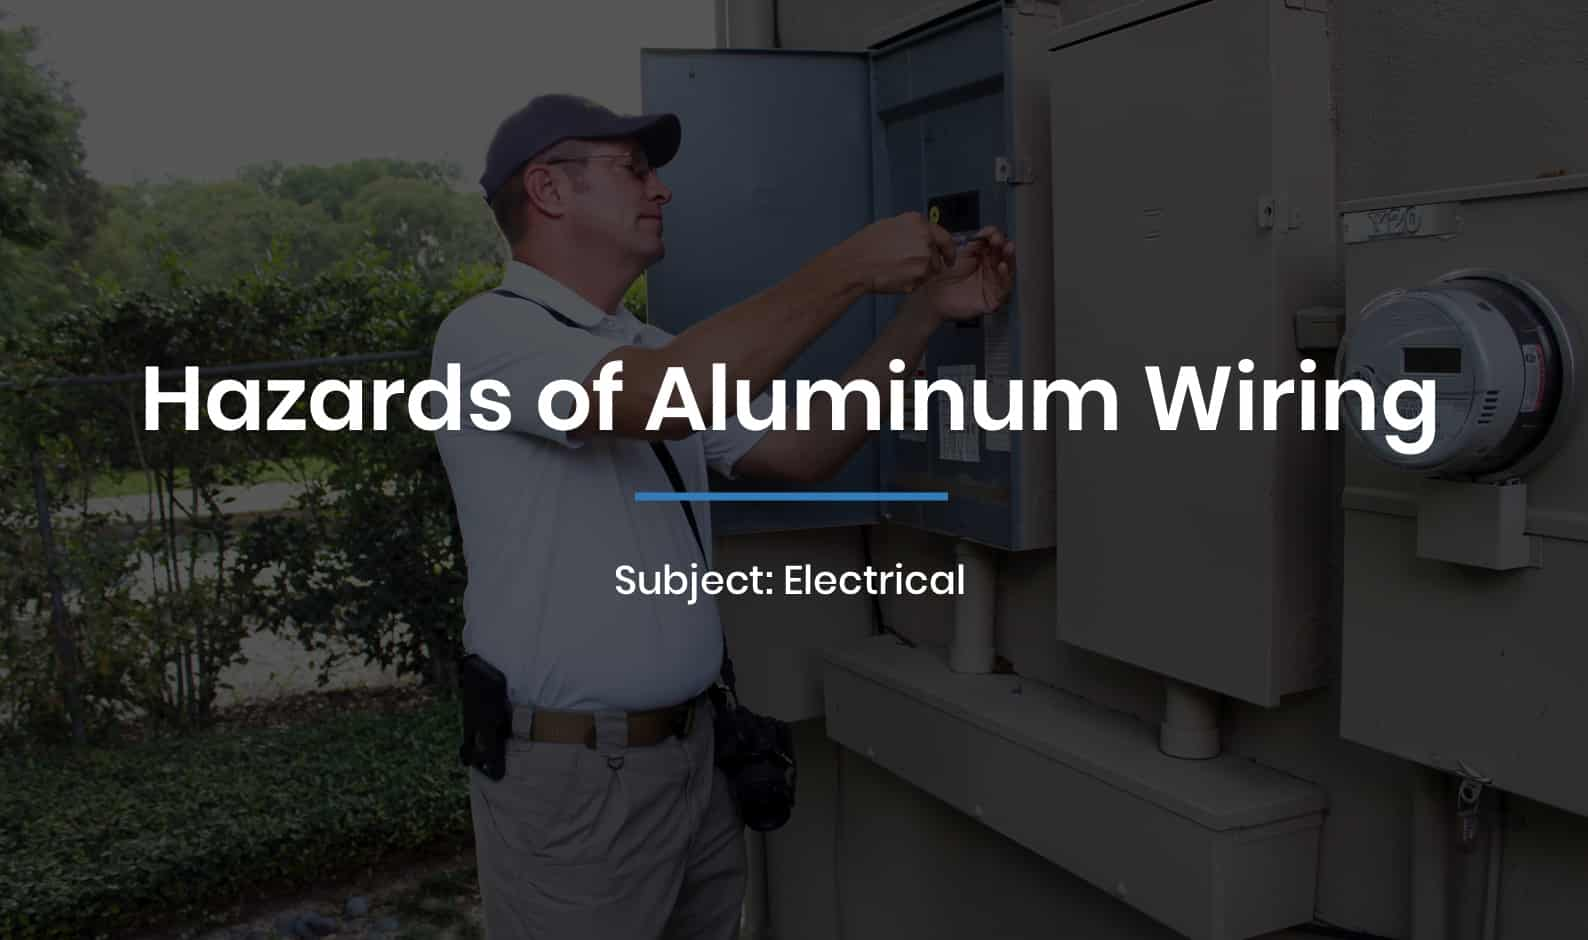 Hazards of Aluminum Wiring